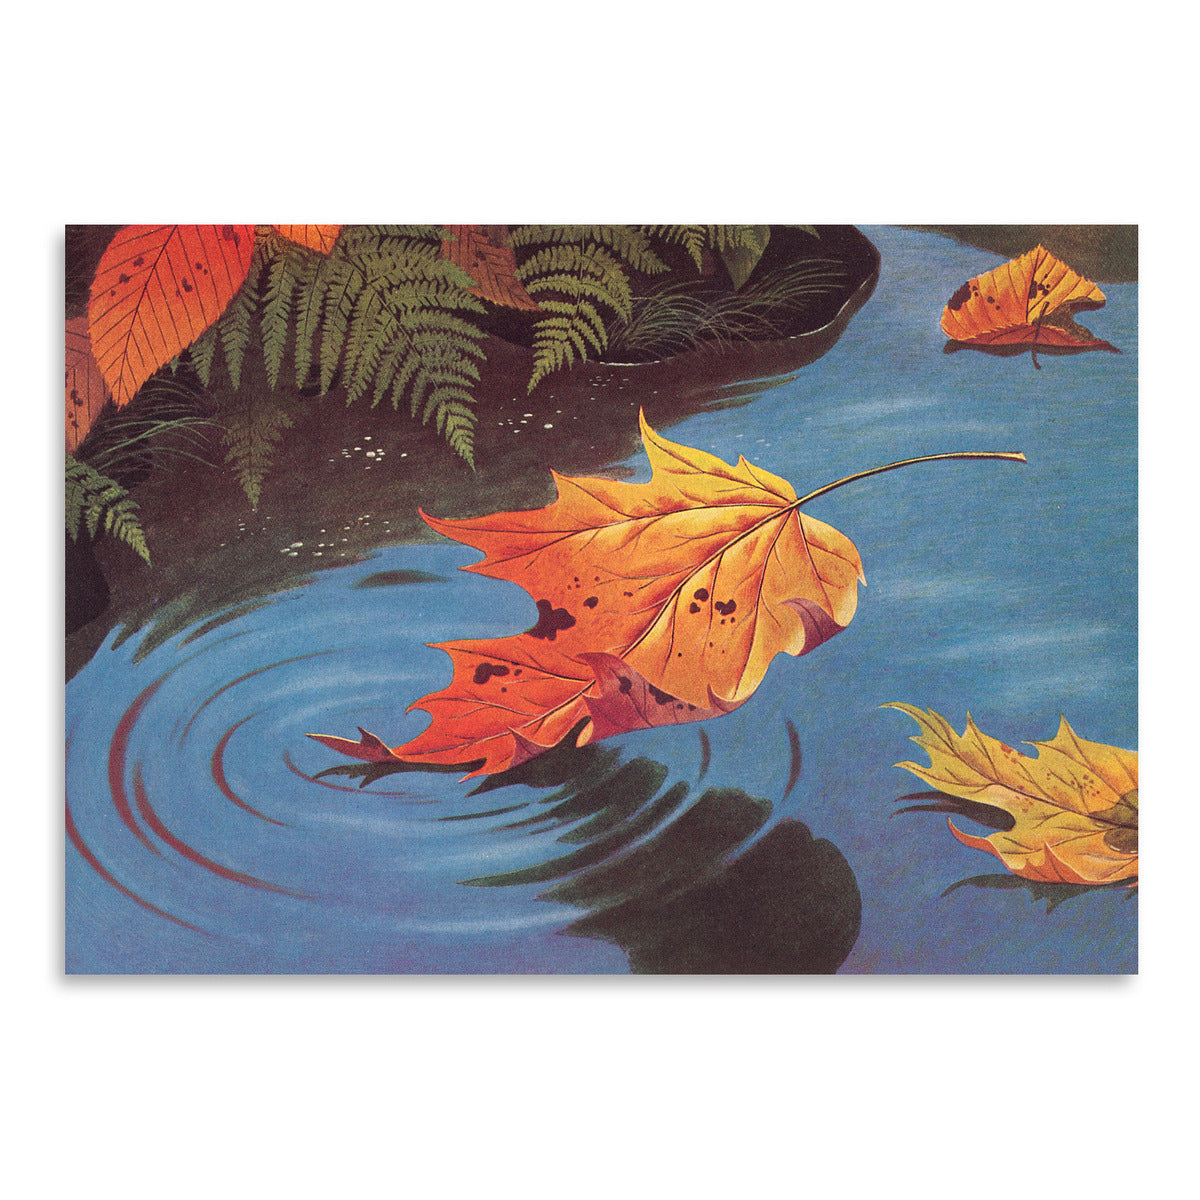 Leaf Falling In Water by Found Image Press Art Print - Art Print - Americanflat